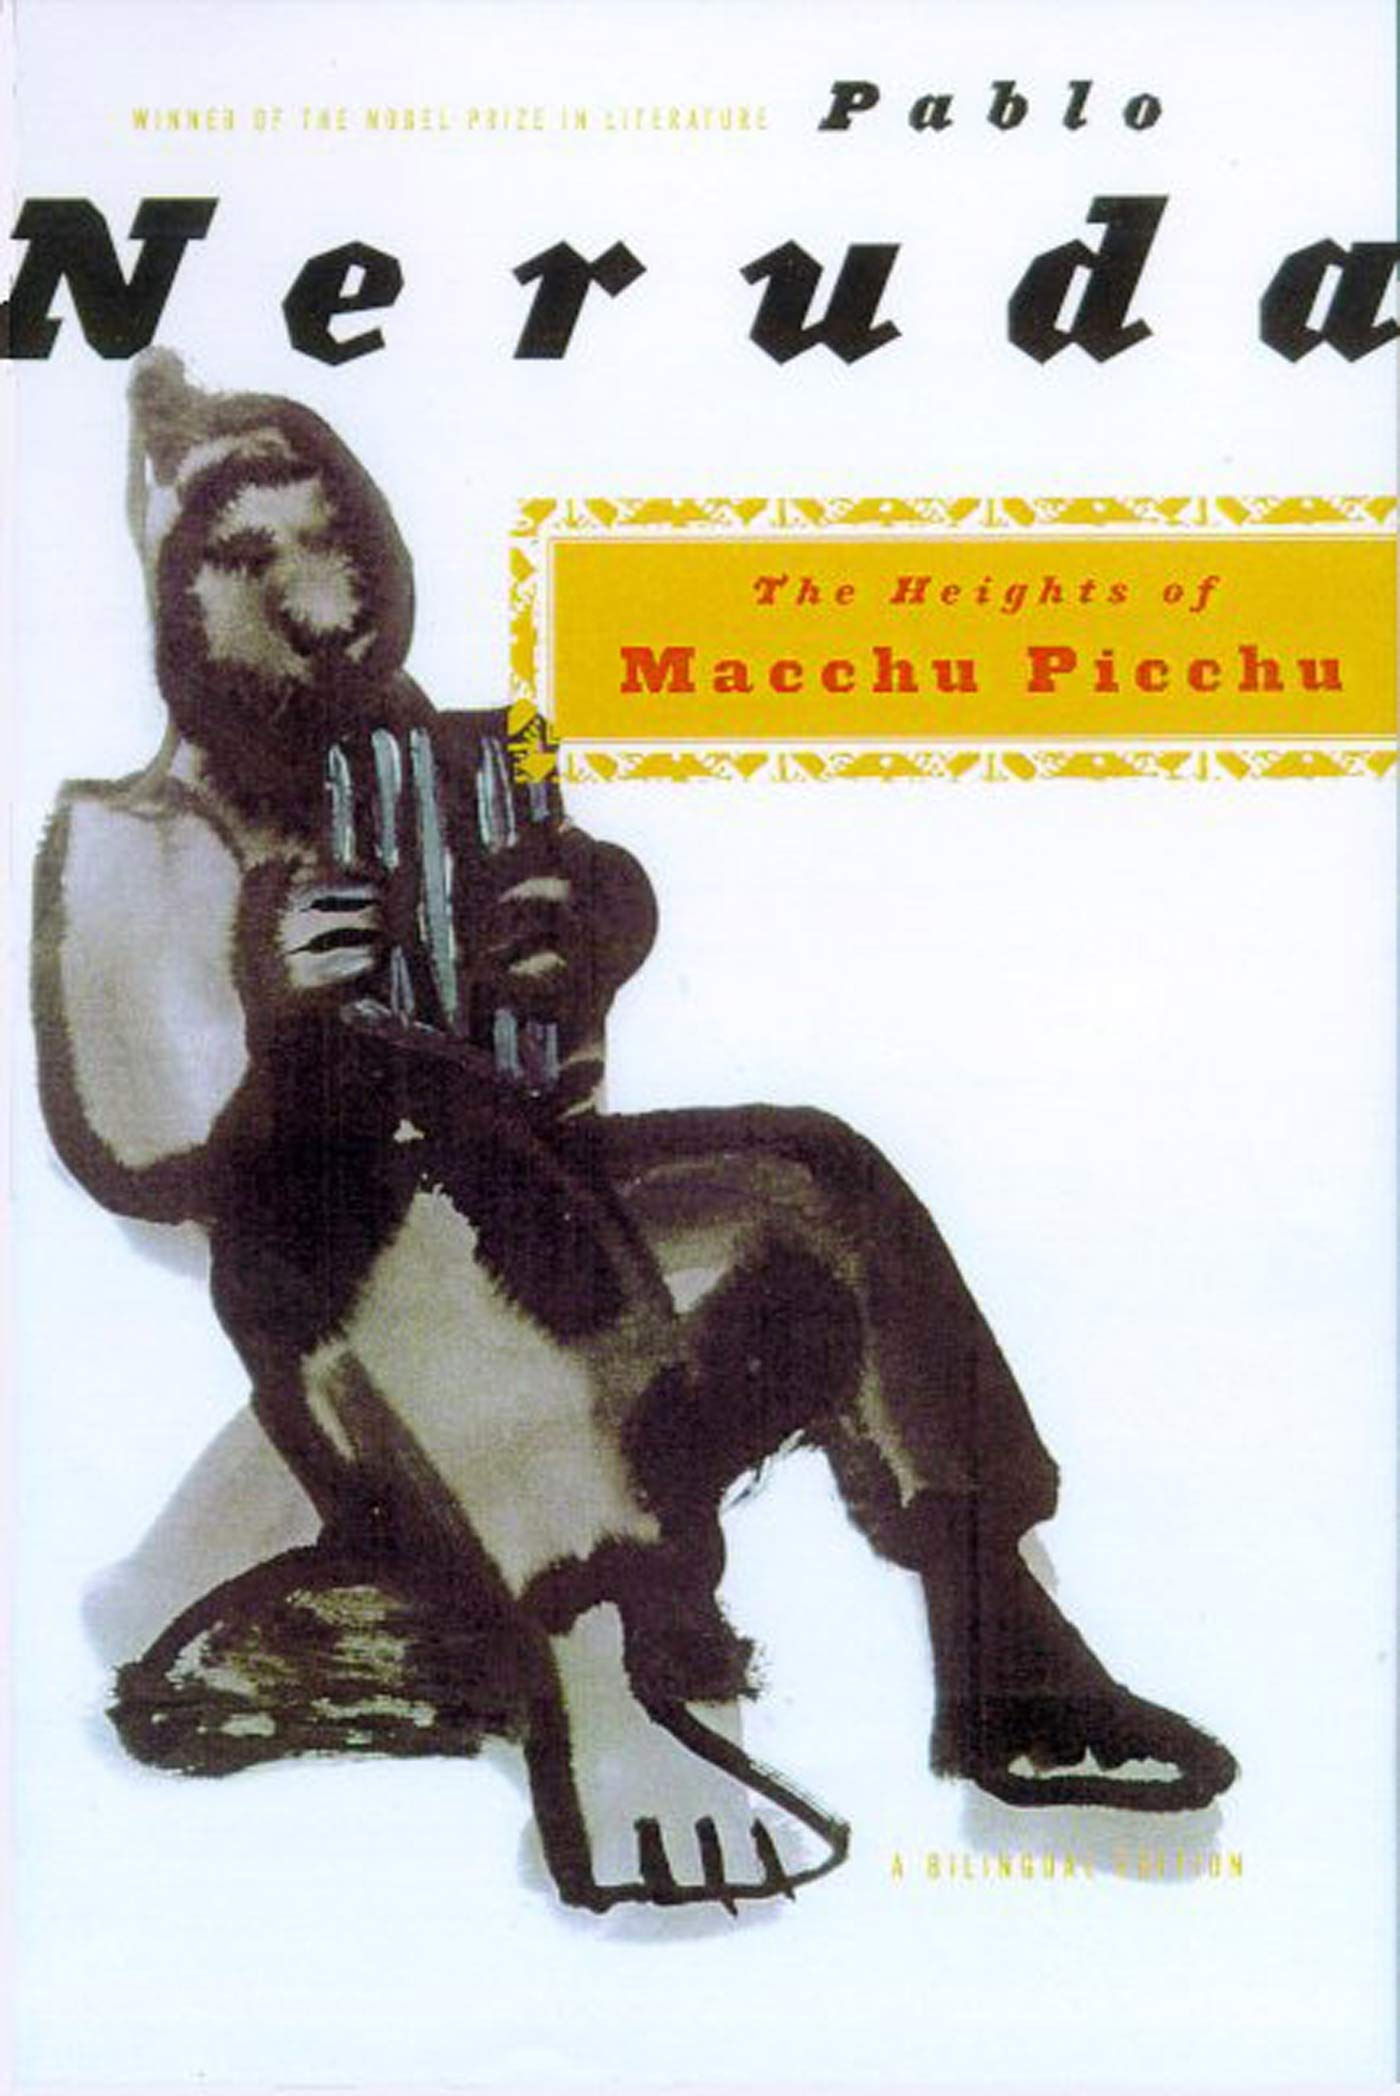 The Heights of Macchu Picchu: A Bilingual Edition